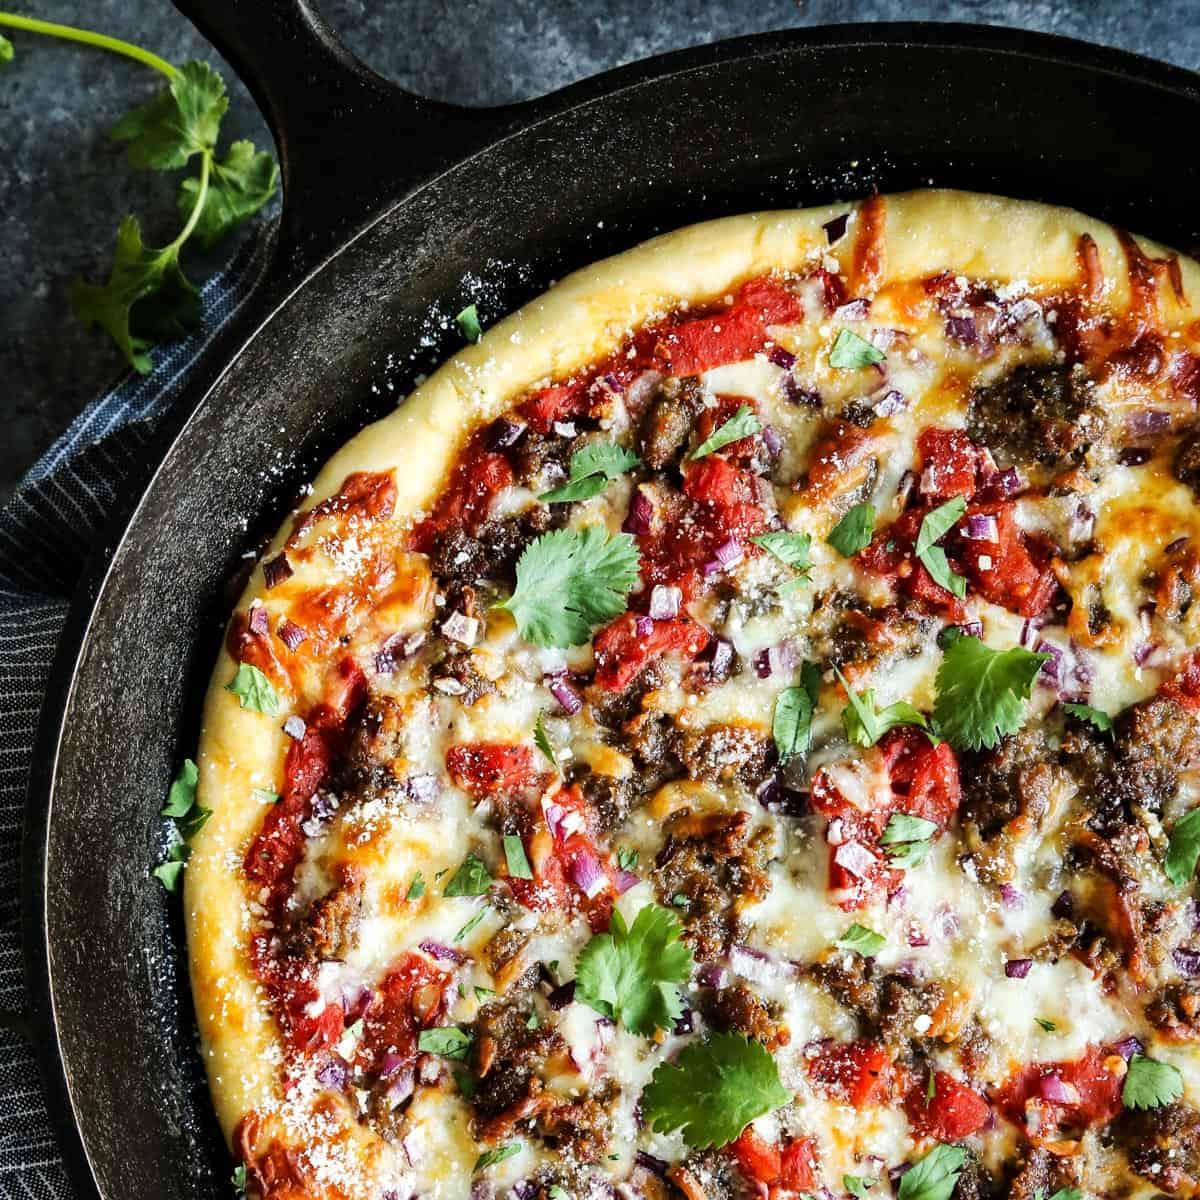 Pizza with Sausage and Chili Garlic Tomato Sauce